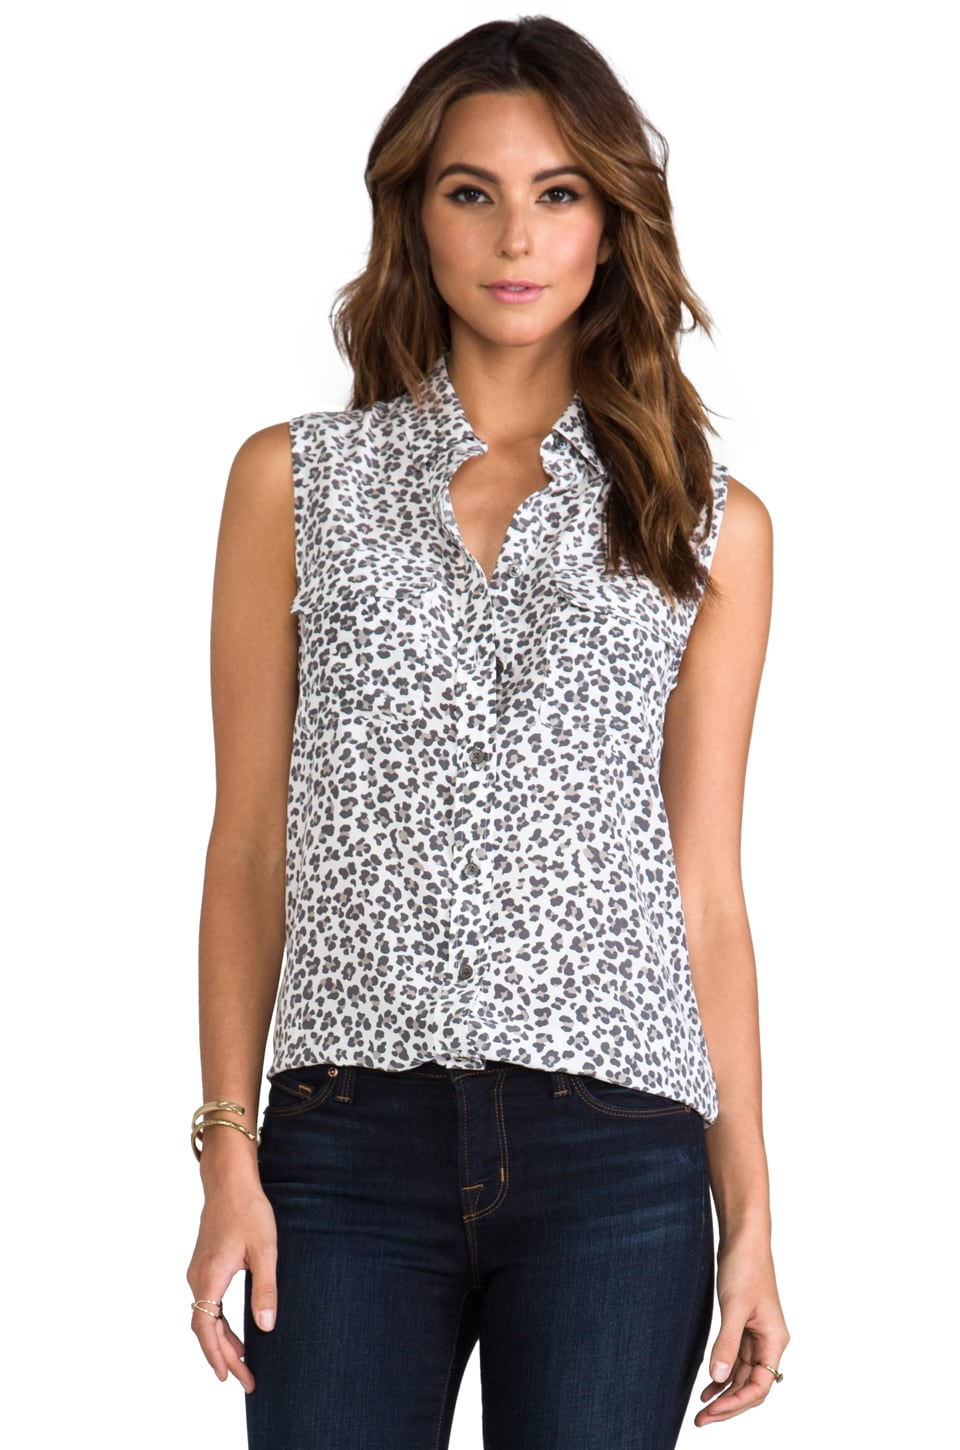 Equipment Sleeveless Slim Signature Kitten Leopard Blouse in Bright White